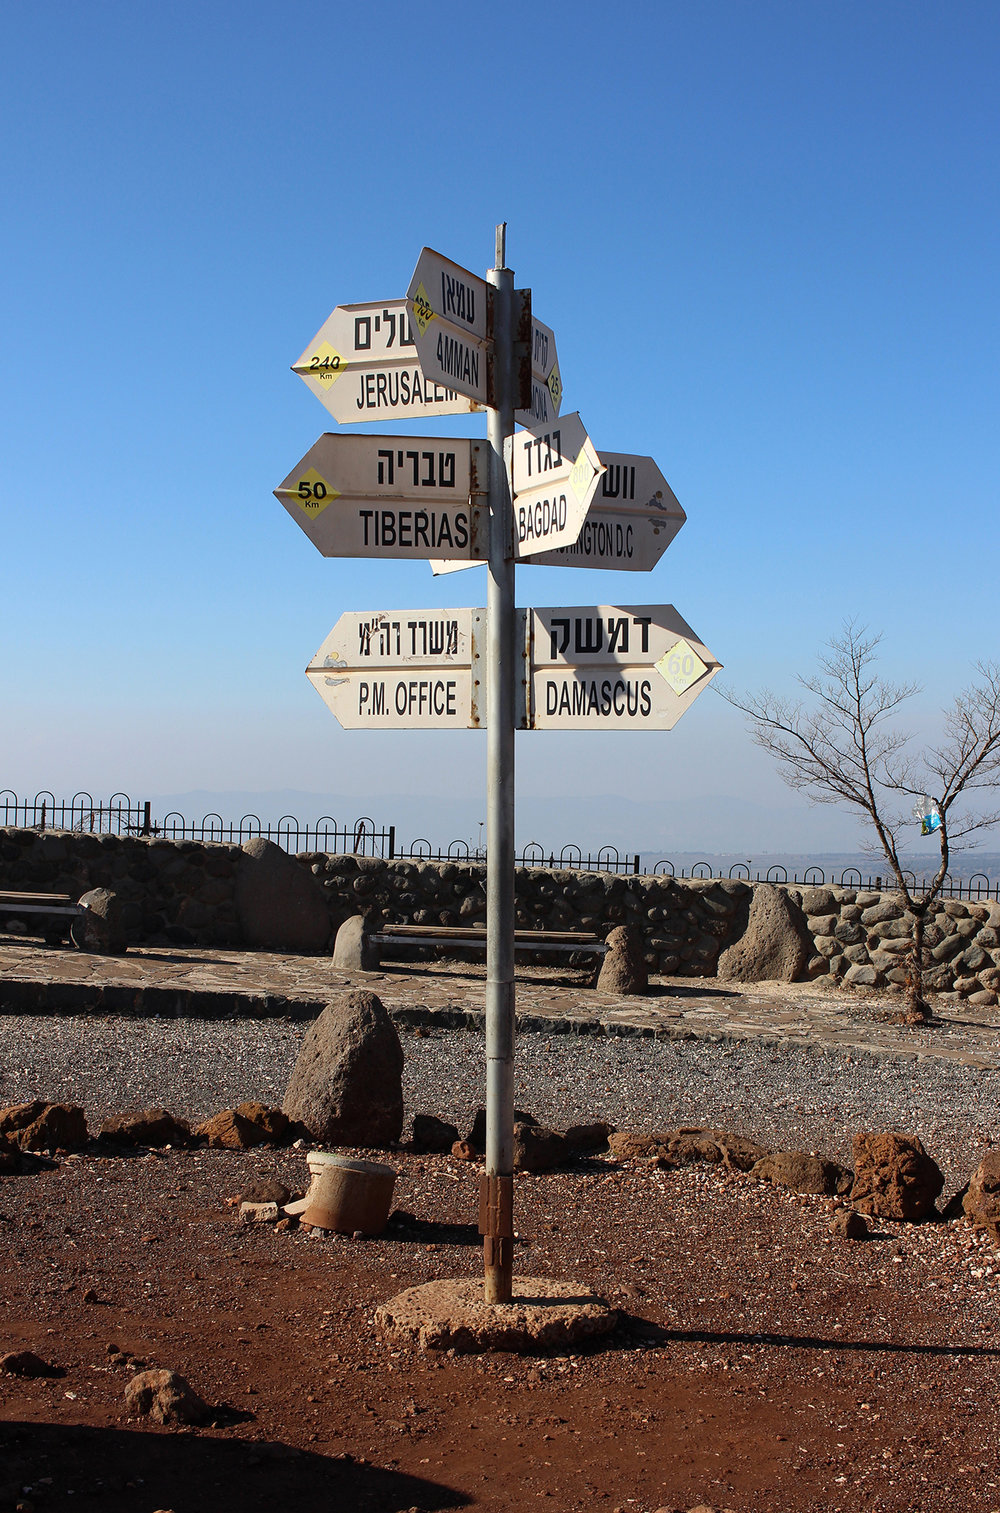 A sign at Har Bental, highest point in Golan, points to a variety of destinations.